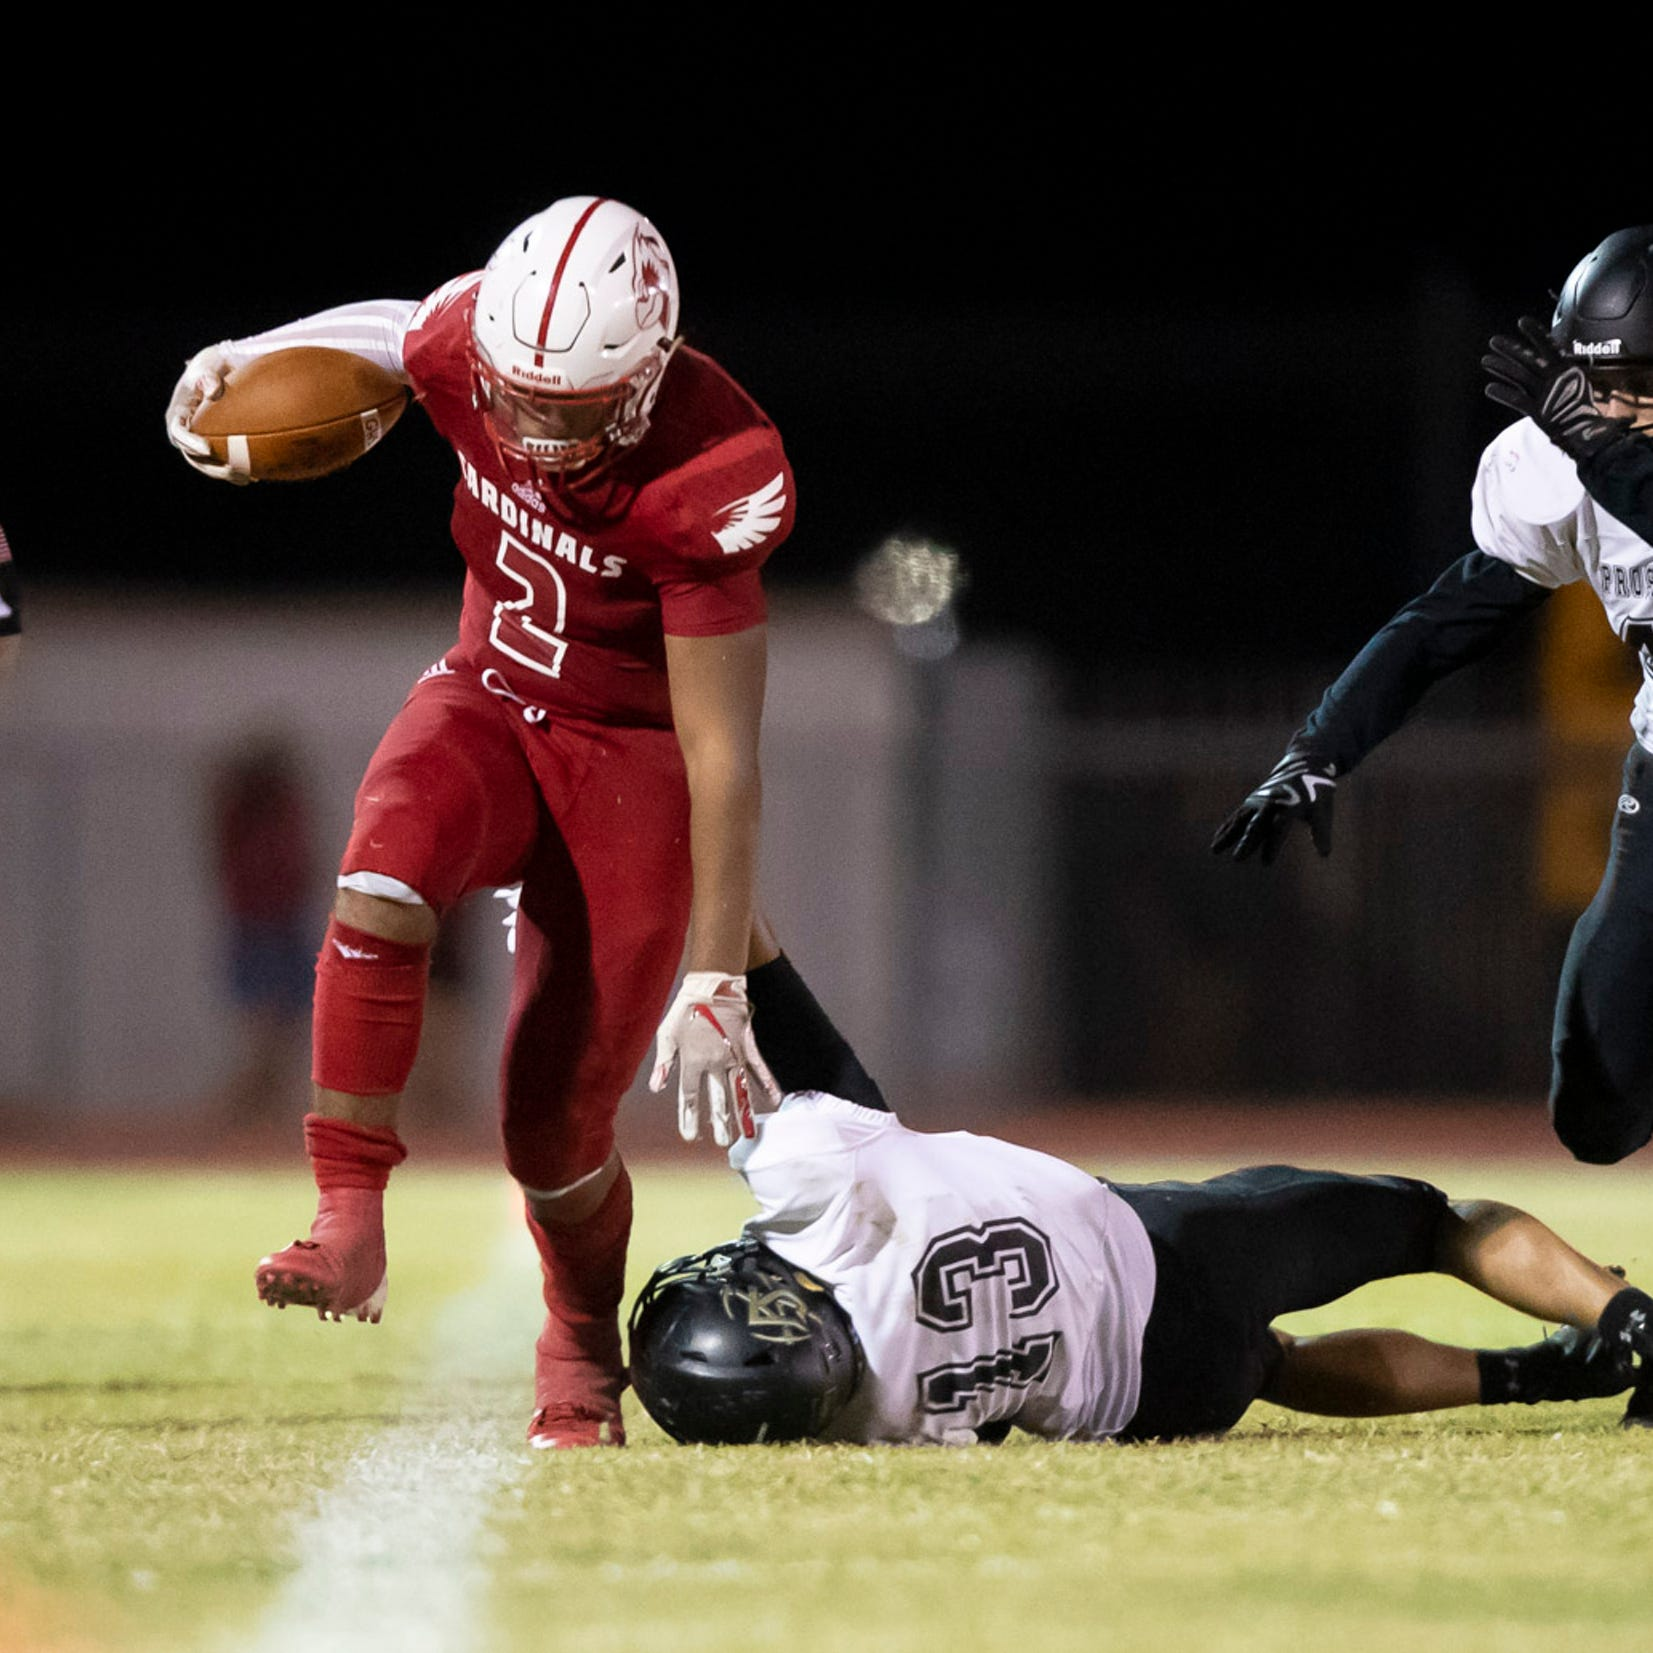 Top performers in Week 10 of Arizona high school football